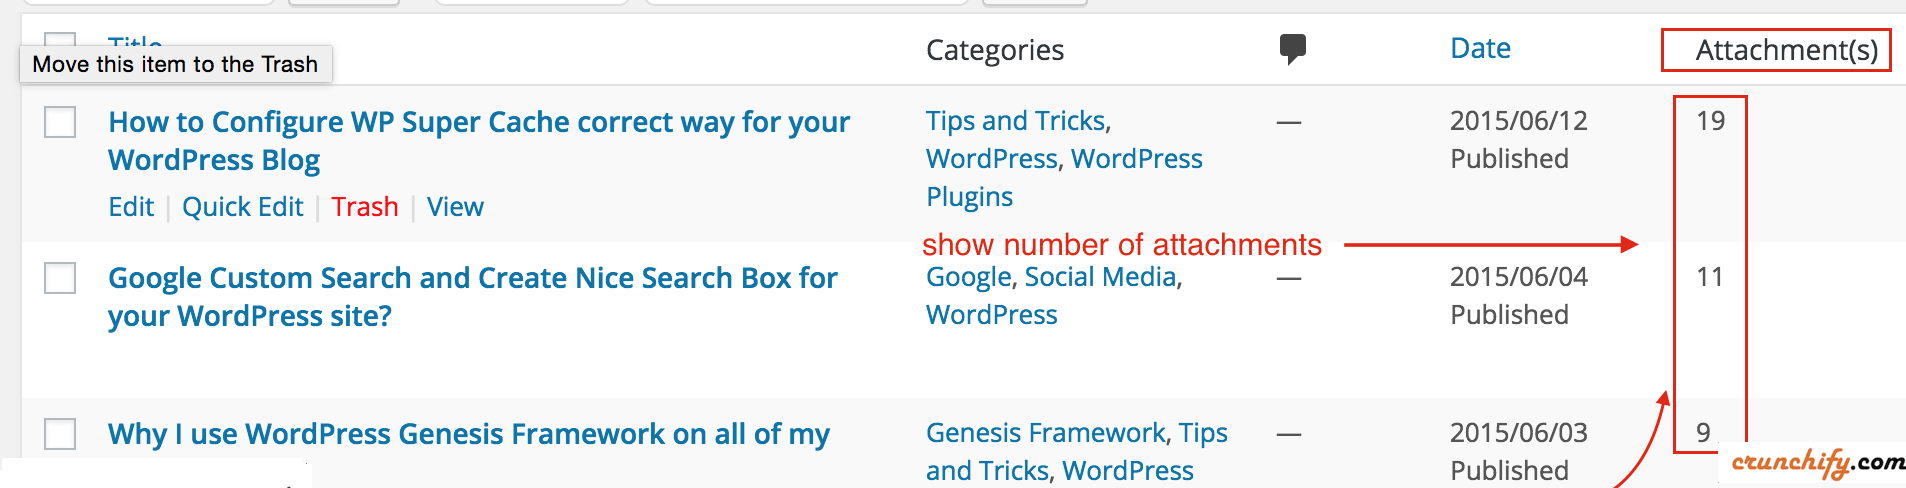 Show-Number-of-Attachments-in-WordPress-Admin-Panel-Crunchify